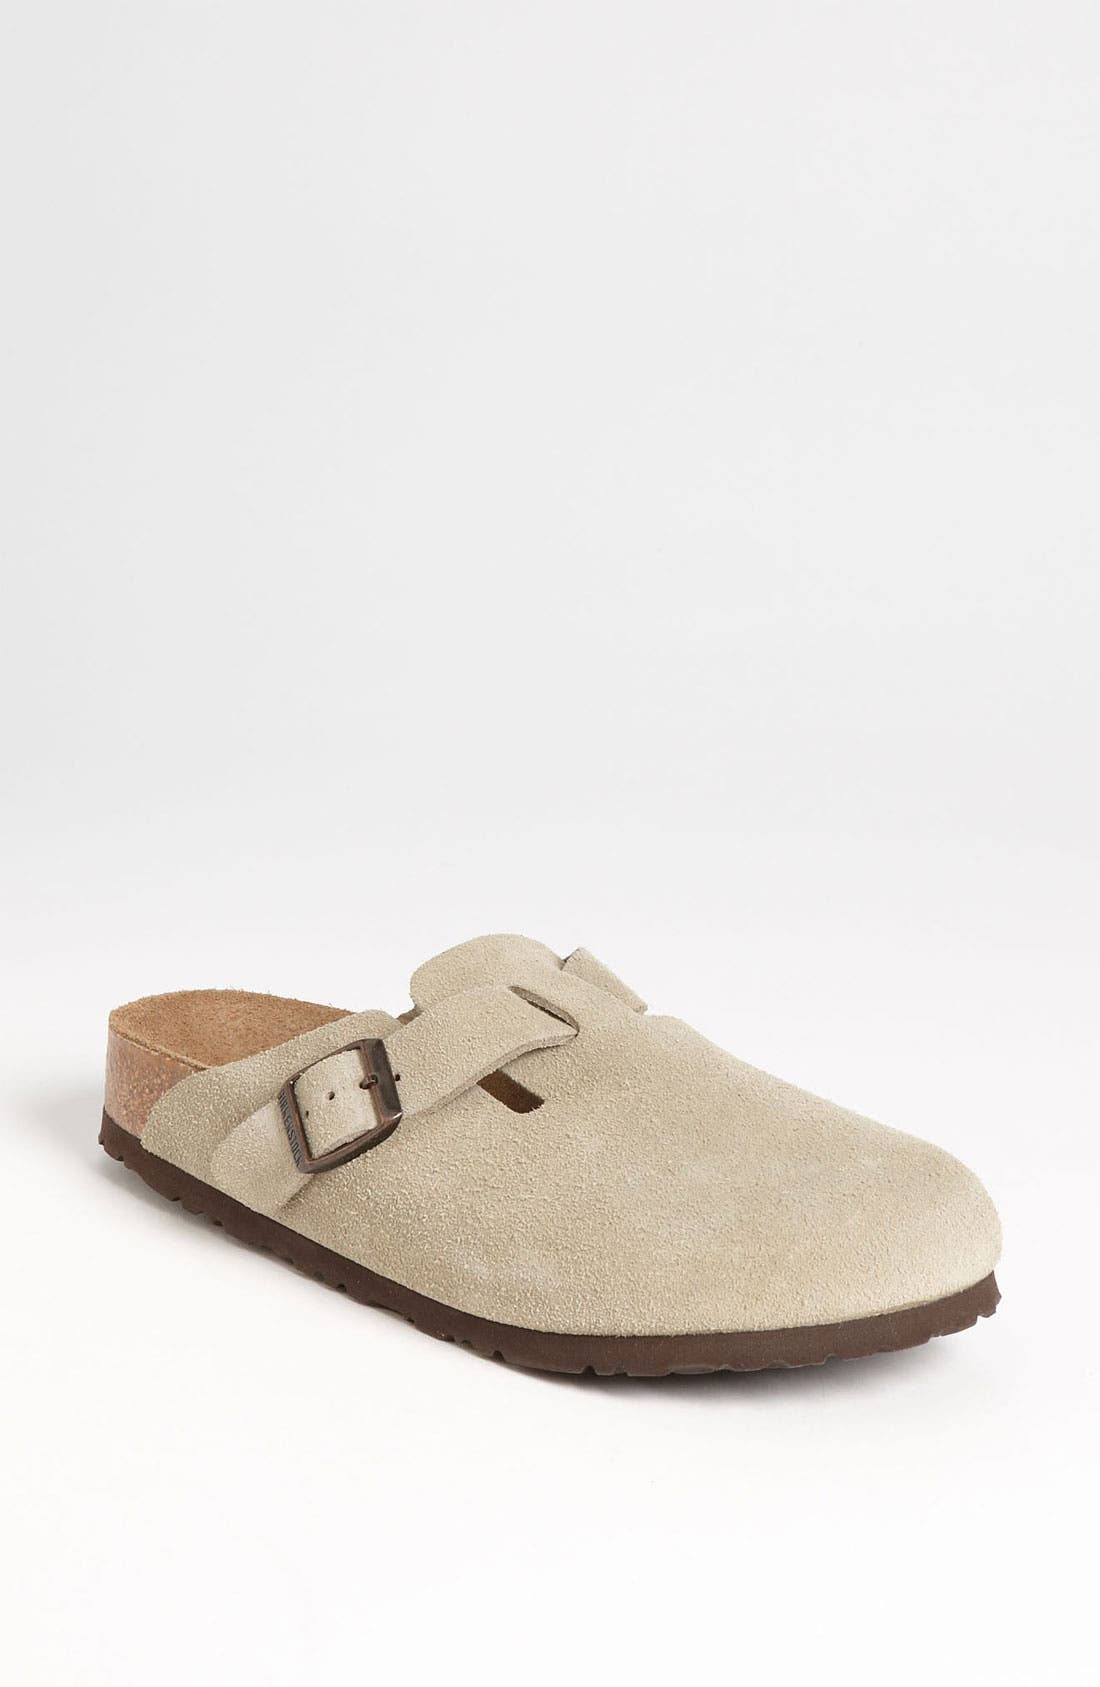 Birkenstock 'Boston' Soft Footbed Clog (Women)